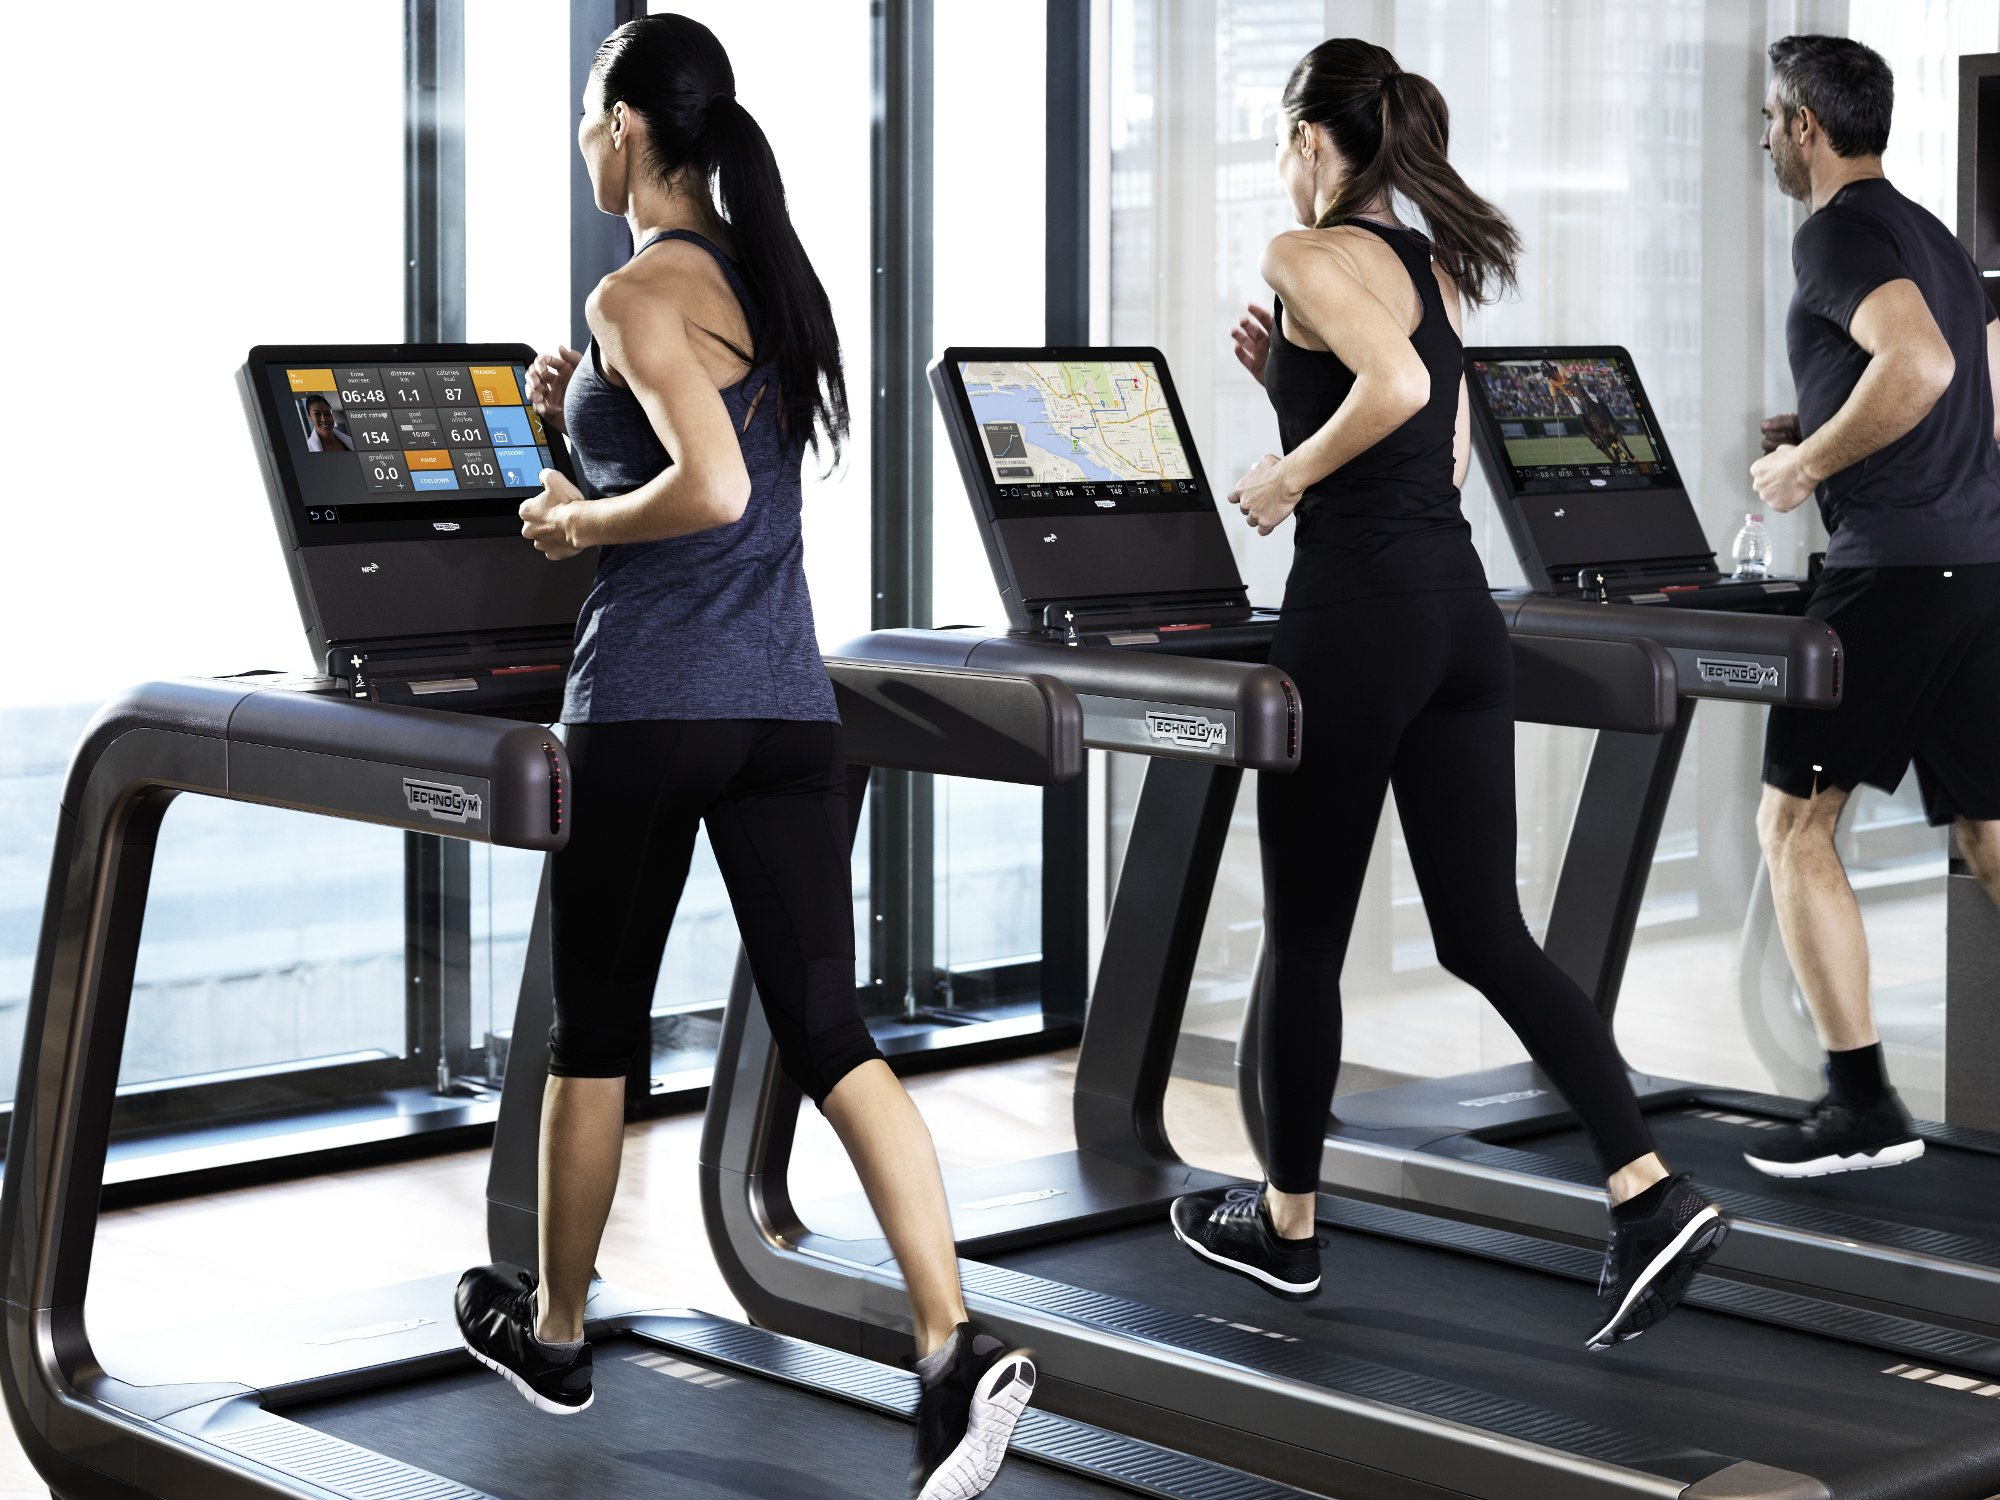 TECHNOGYM ESTABLISHES FIRST CONNECTED WELLNESS COMMUNITY IN THE U.S. AT LAKE NONA